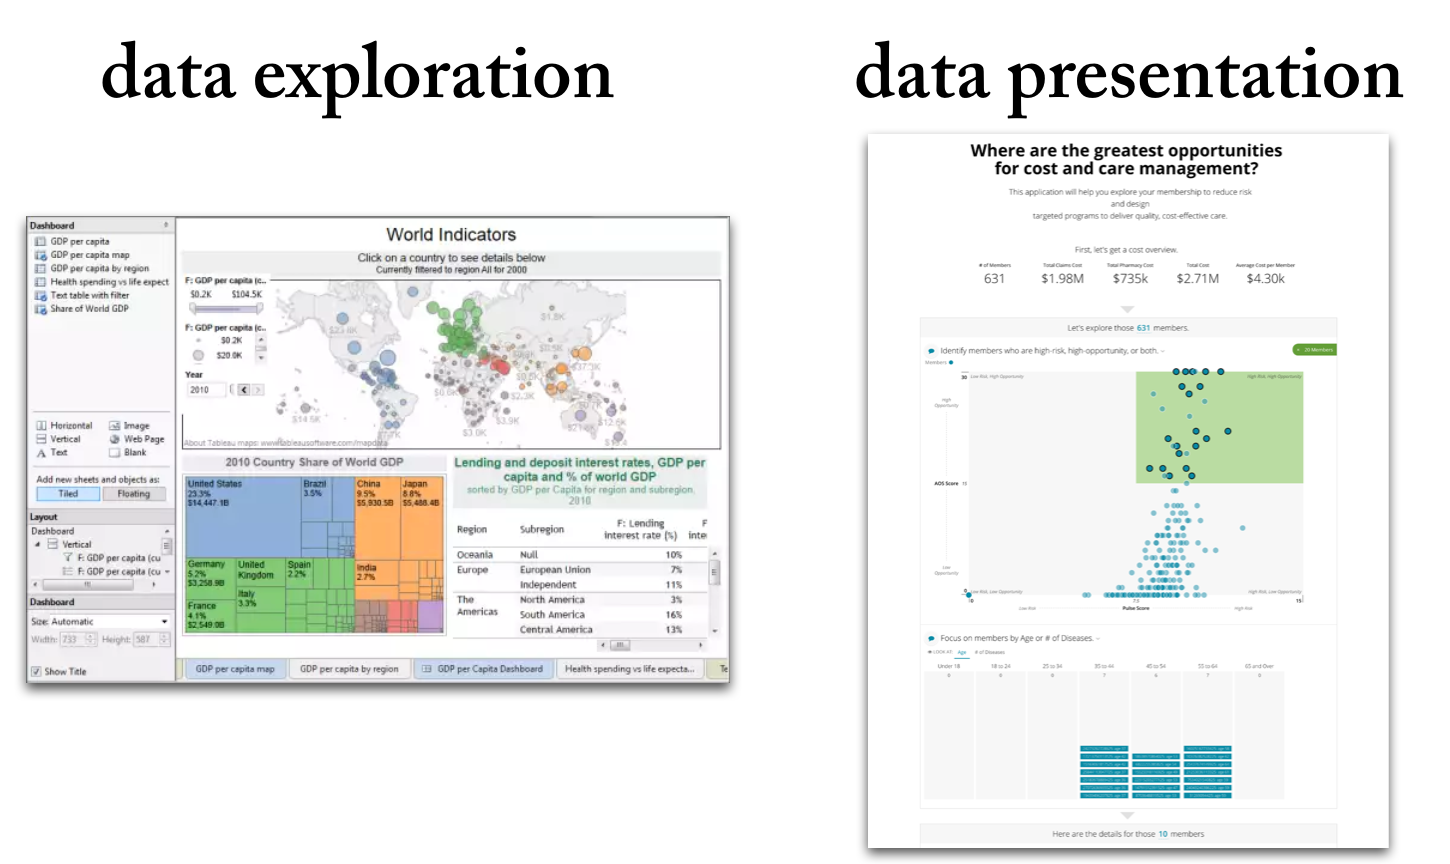 Data exploration tools generally try to cram all the information on a single page; data presentation needs better flow and explanation to tell the story properly.